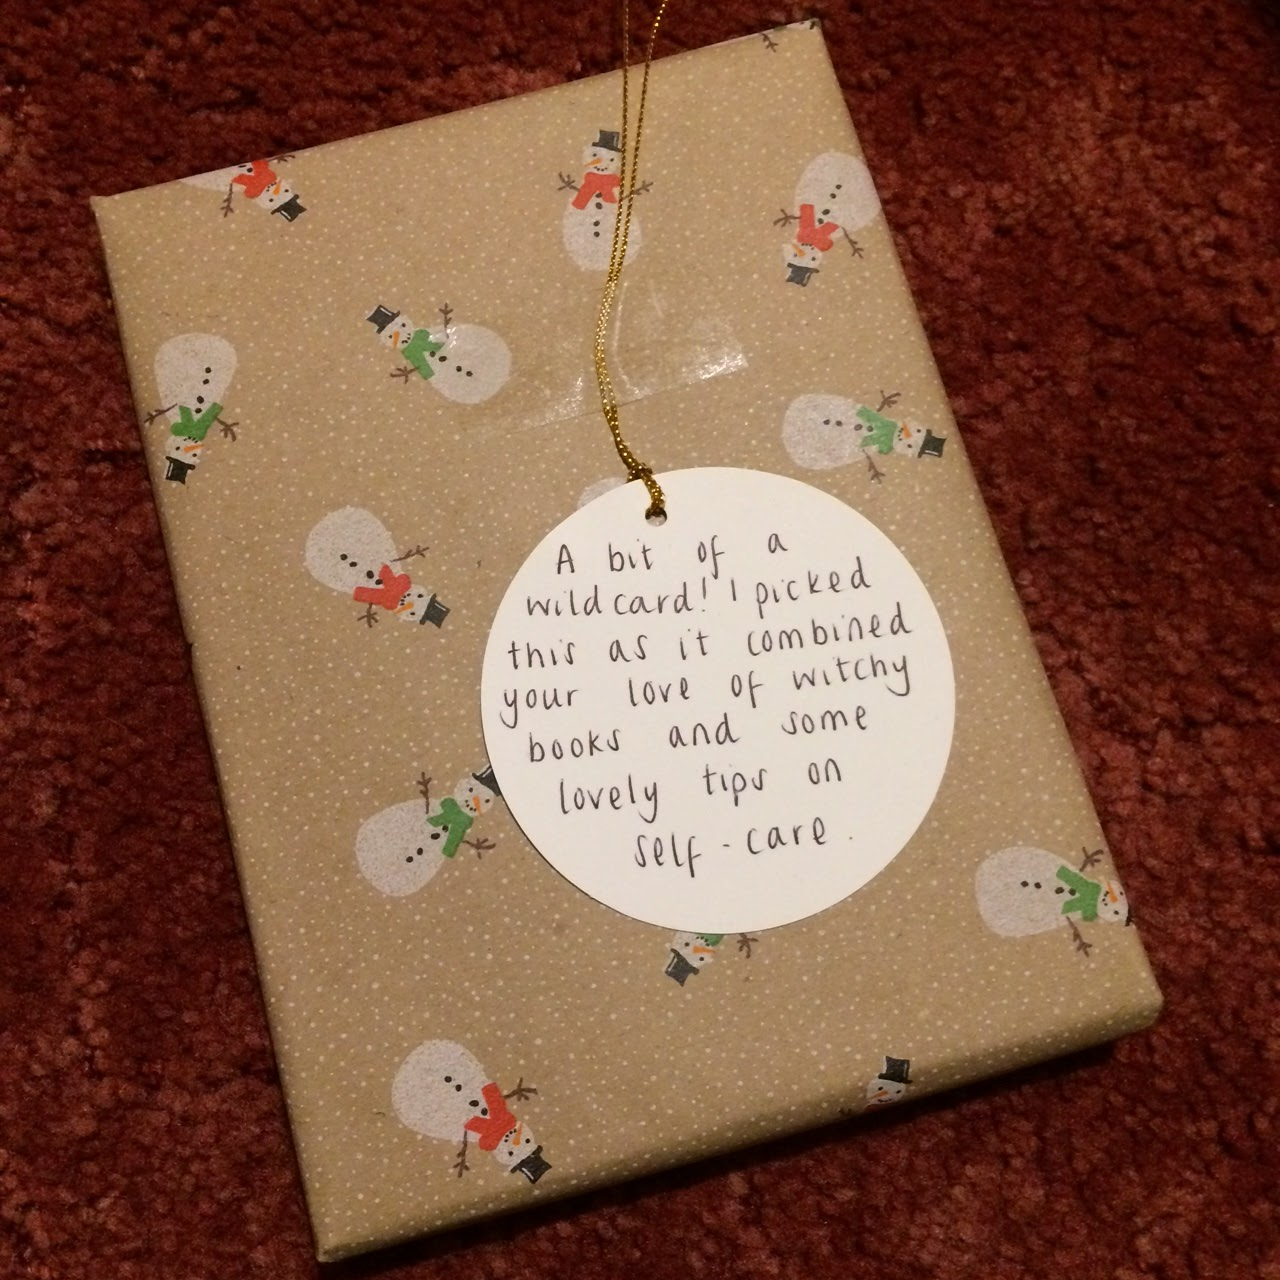 Wrapped present with tag reading, A bit of a wildcard! I picked this as it combined your love of witchy books and some lovely tips on self care.